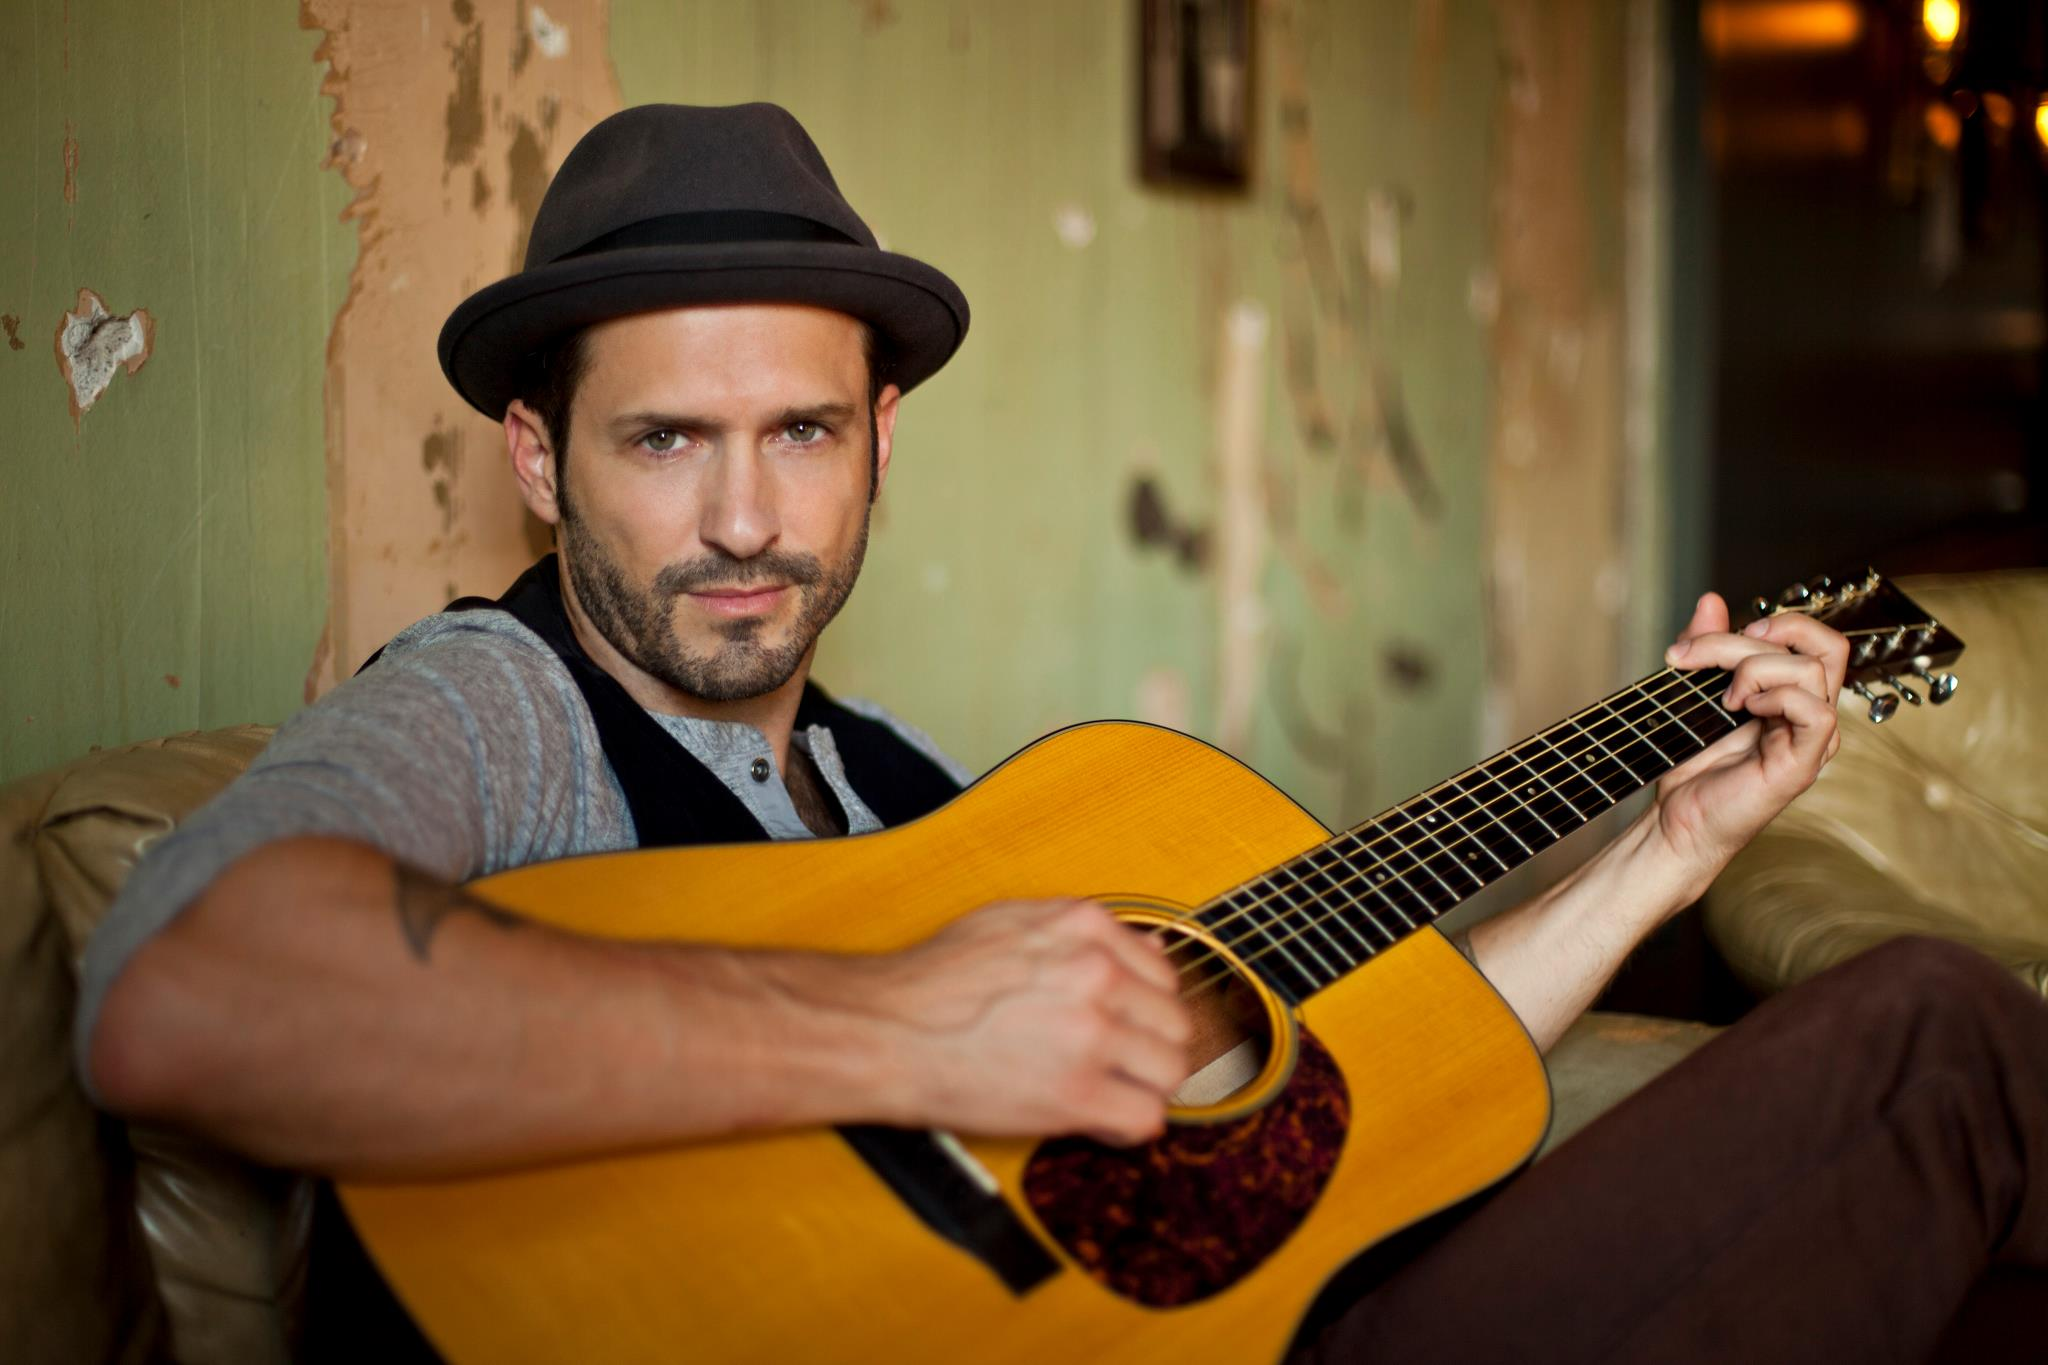 tony lucca musician sun studio singer songwriter mickey mouse club michigan detroit actor